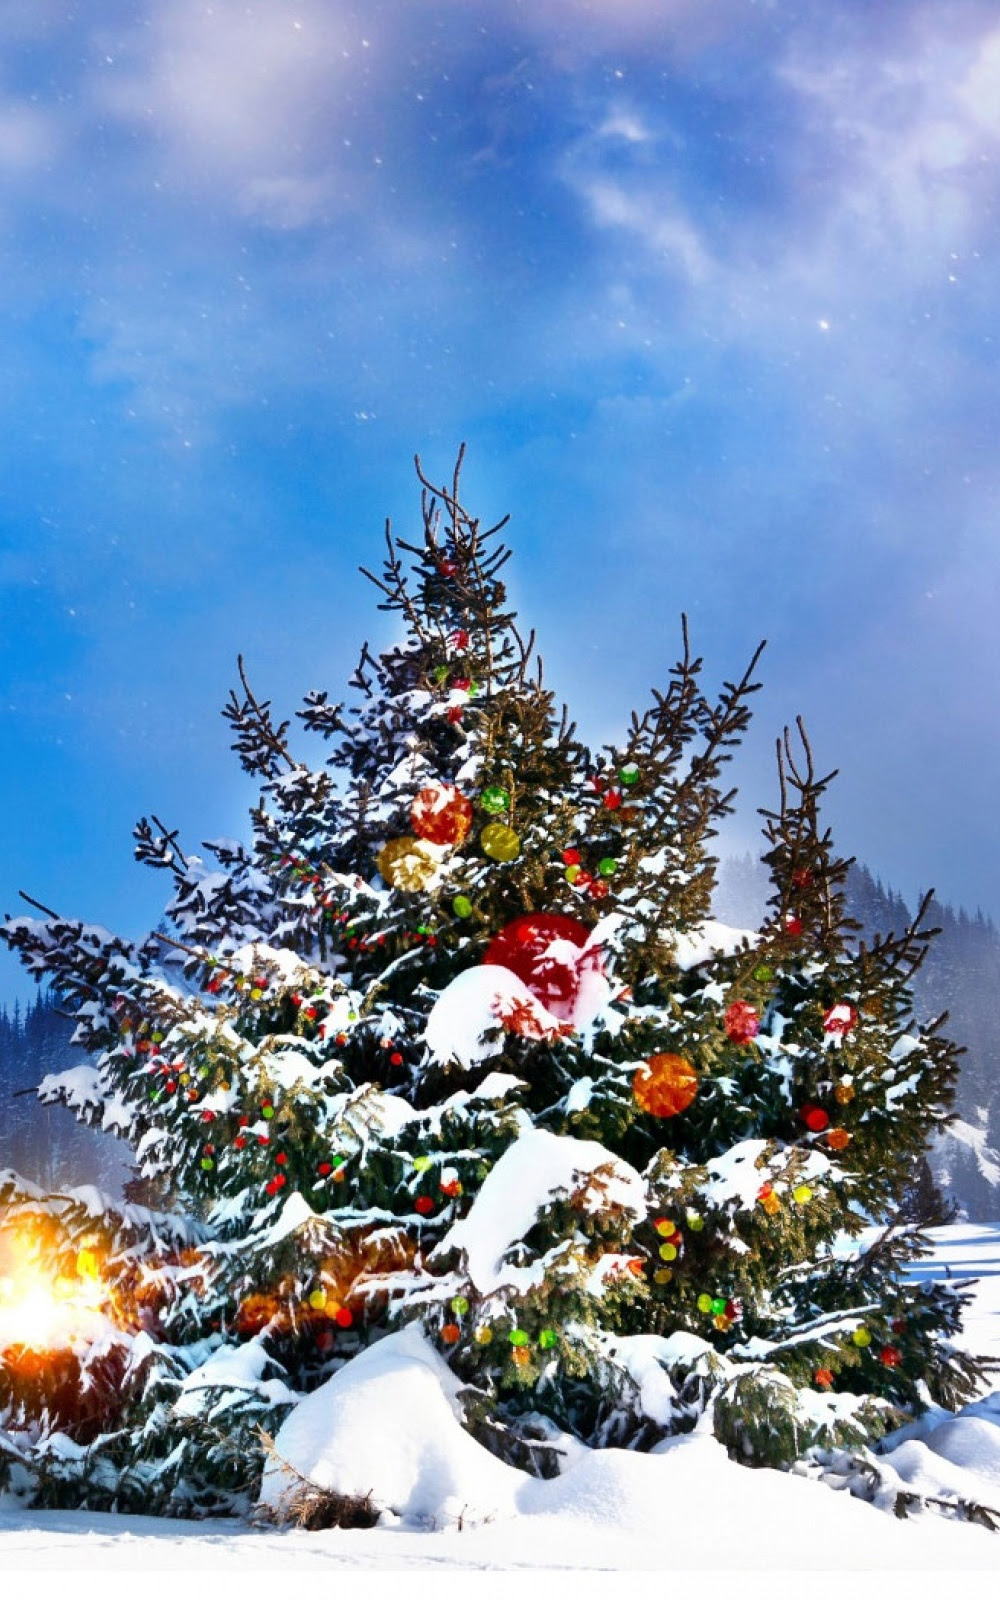 Christmas Trees Decorated Outside Mobile Wallpaper Mobiles Wall